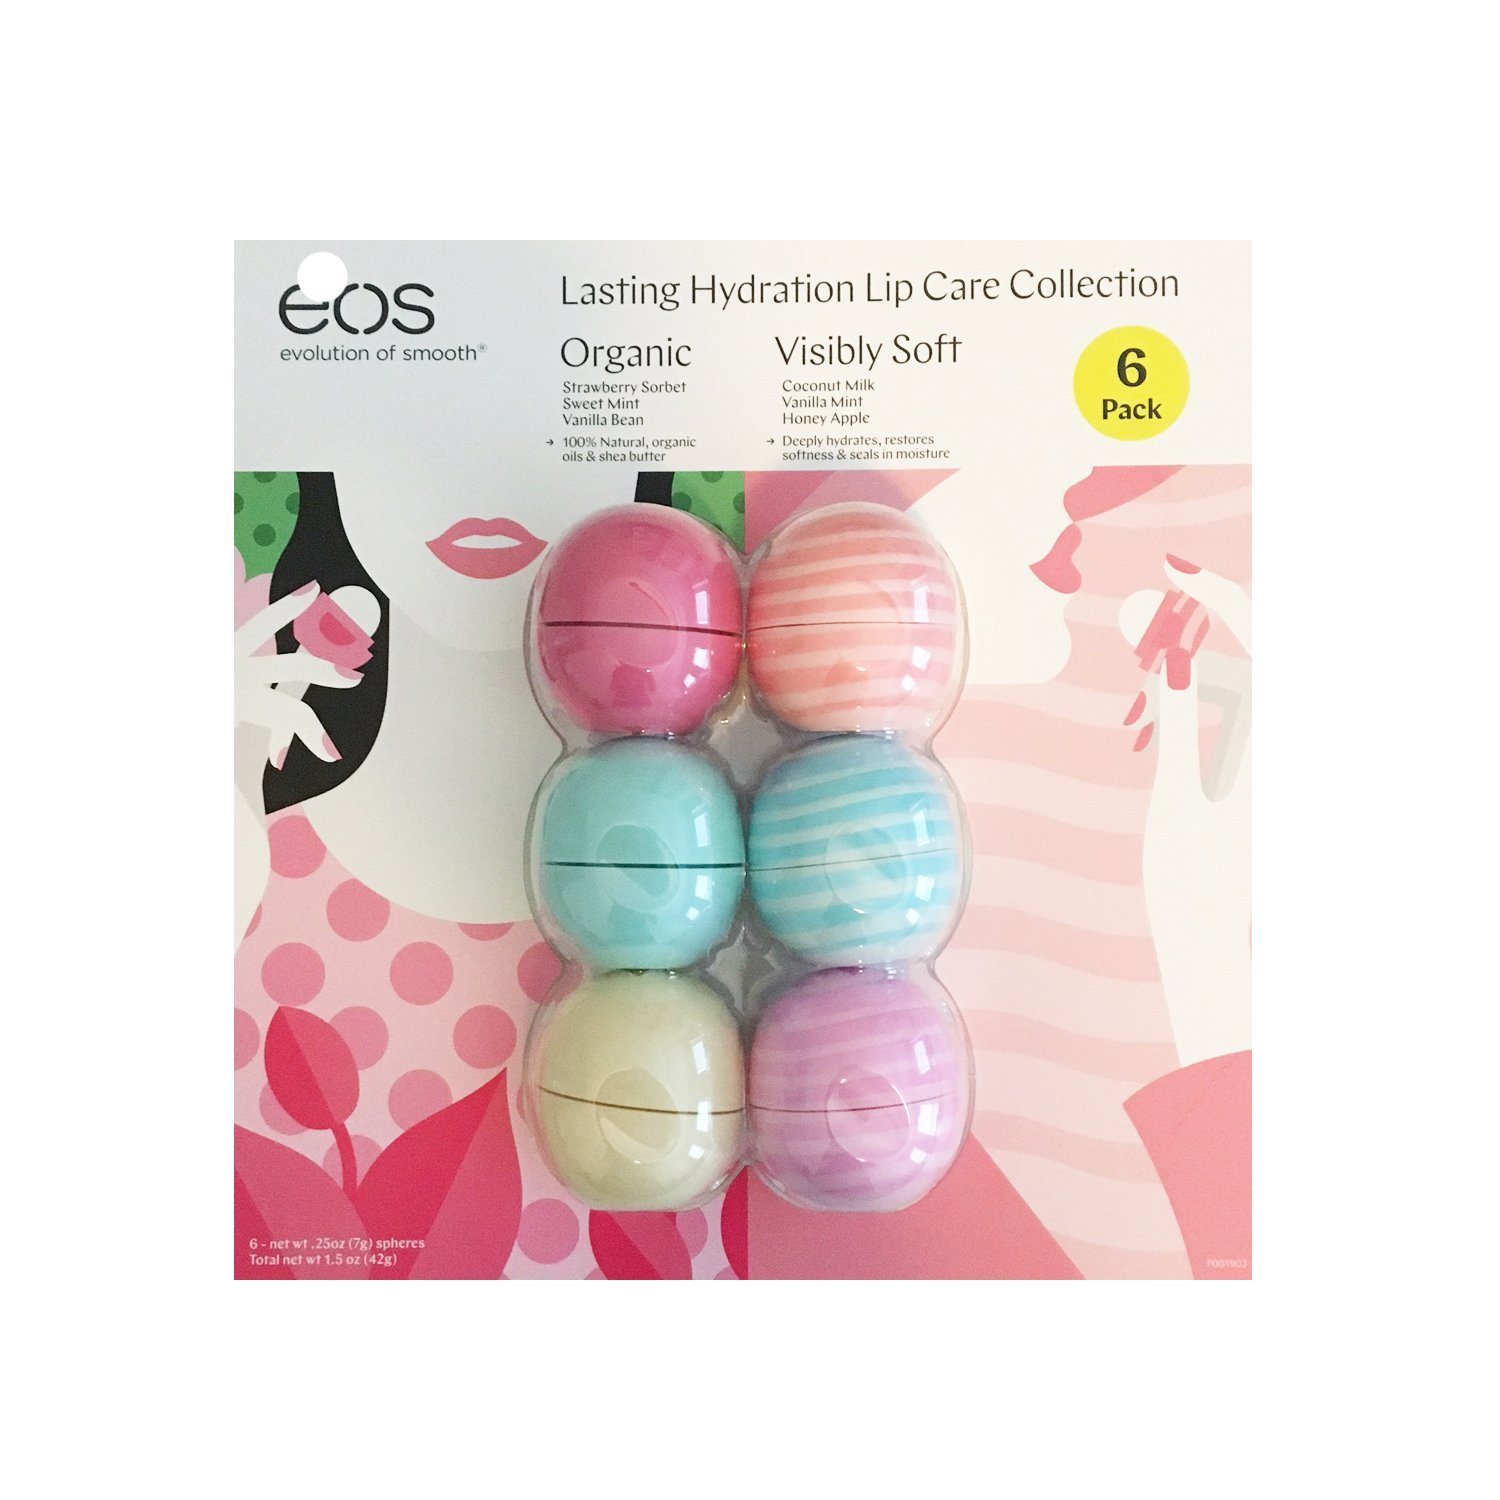 Eos Evolution of Smooth Lip Balm ~ Lasting Hydration Lip Care Collection 6-pack ~ Strawberry Sorbet, Sweet Mint, Vanilla Bean, Coconut Milk, Vanilla Mint, Honey Apple